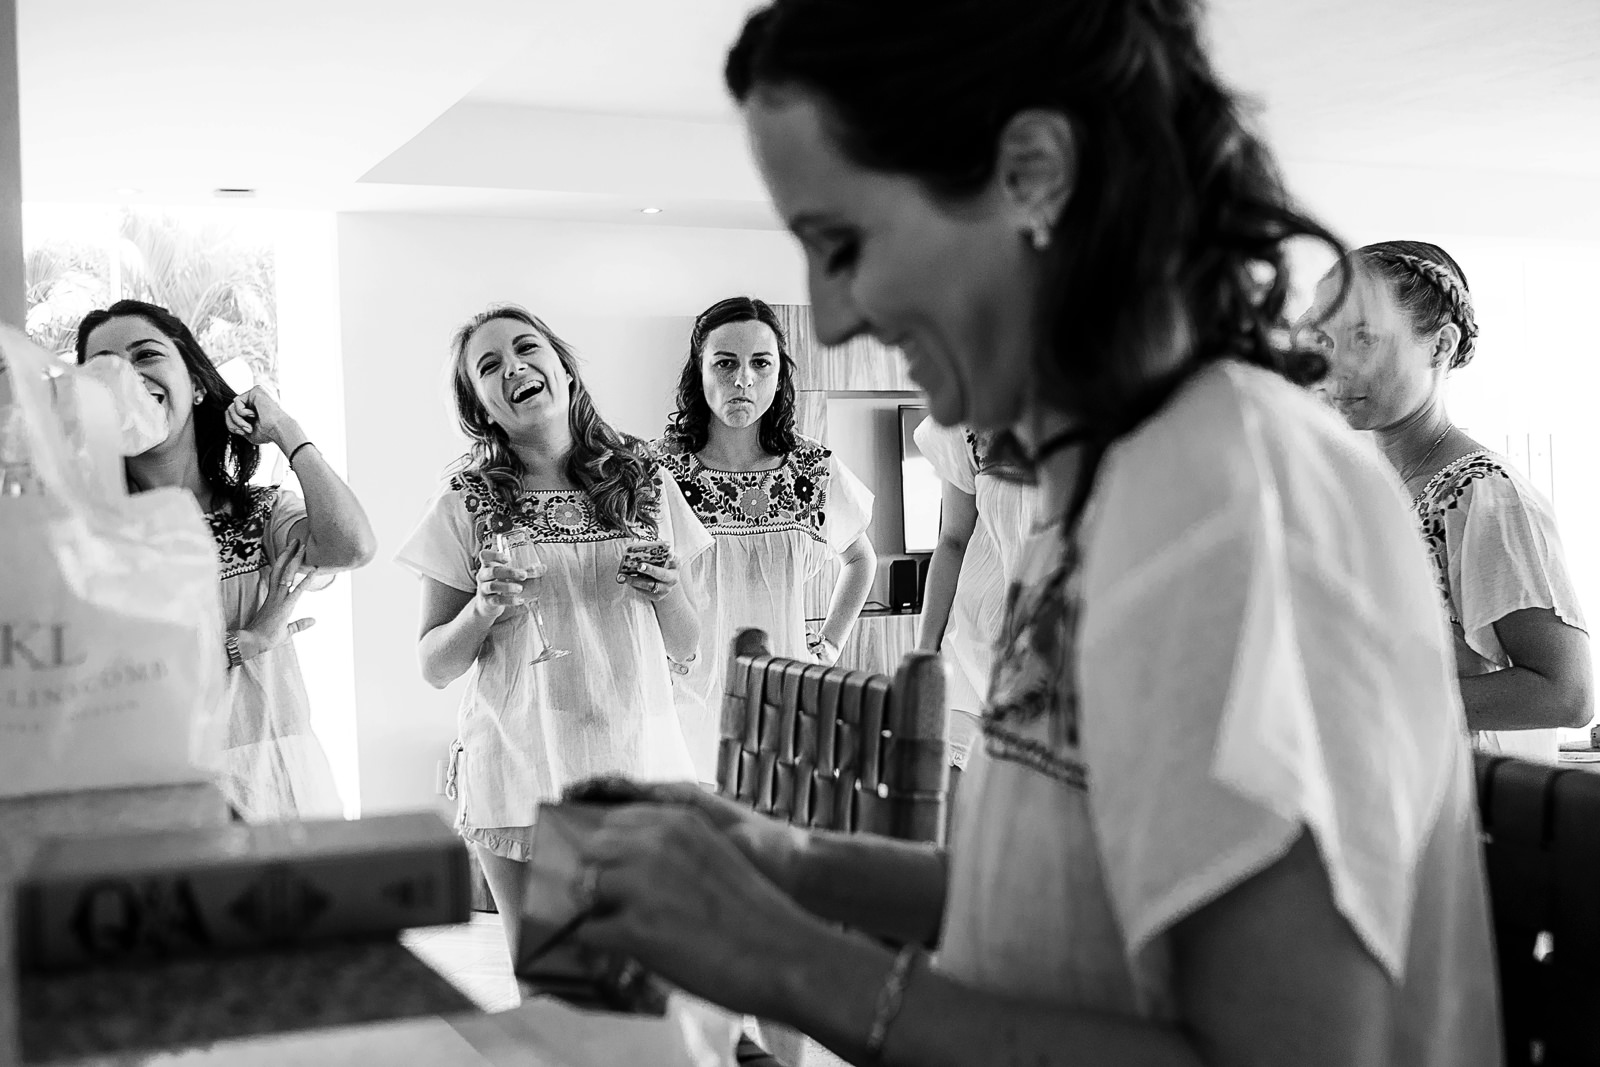 Bridesmaids enjoying the present from groom to bride - Eder Acevedo cancun los cabos vallarta wedding photographer